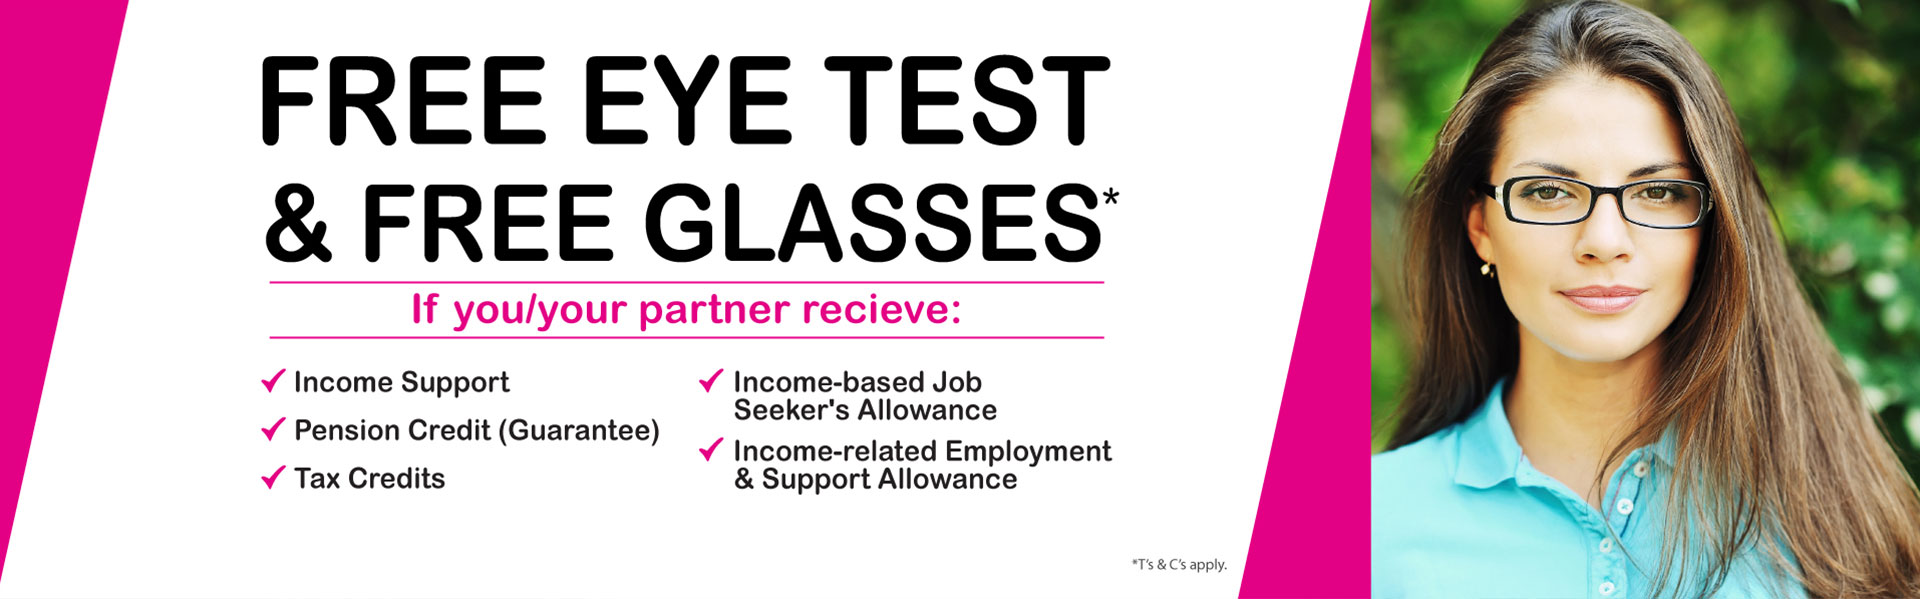 free eye test and free glasses banner